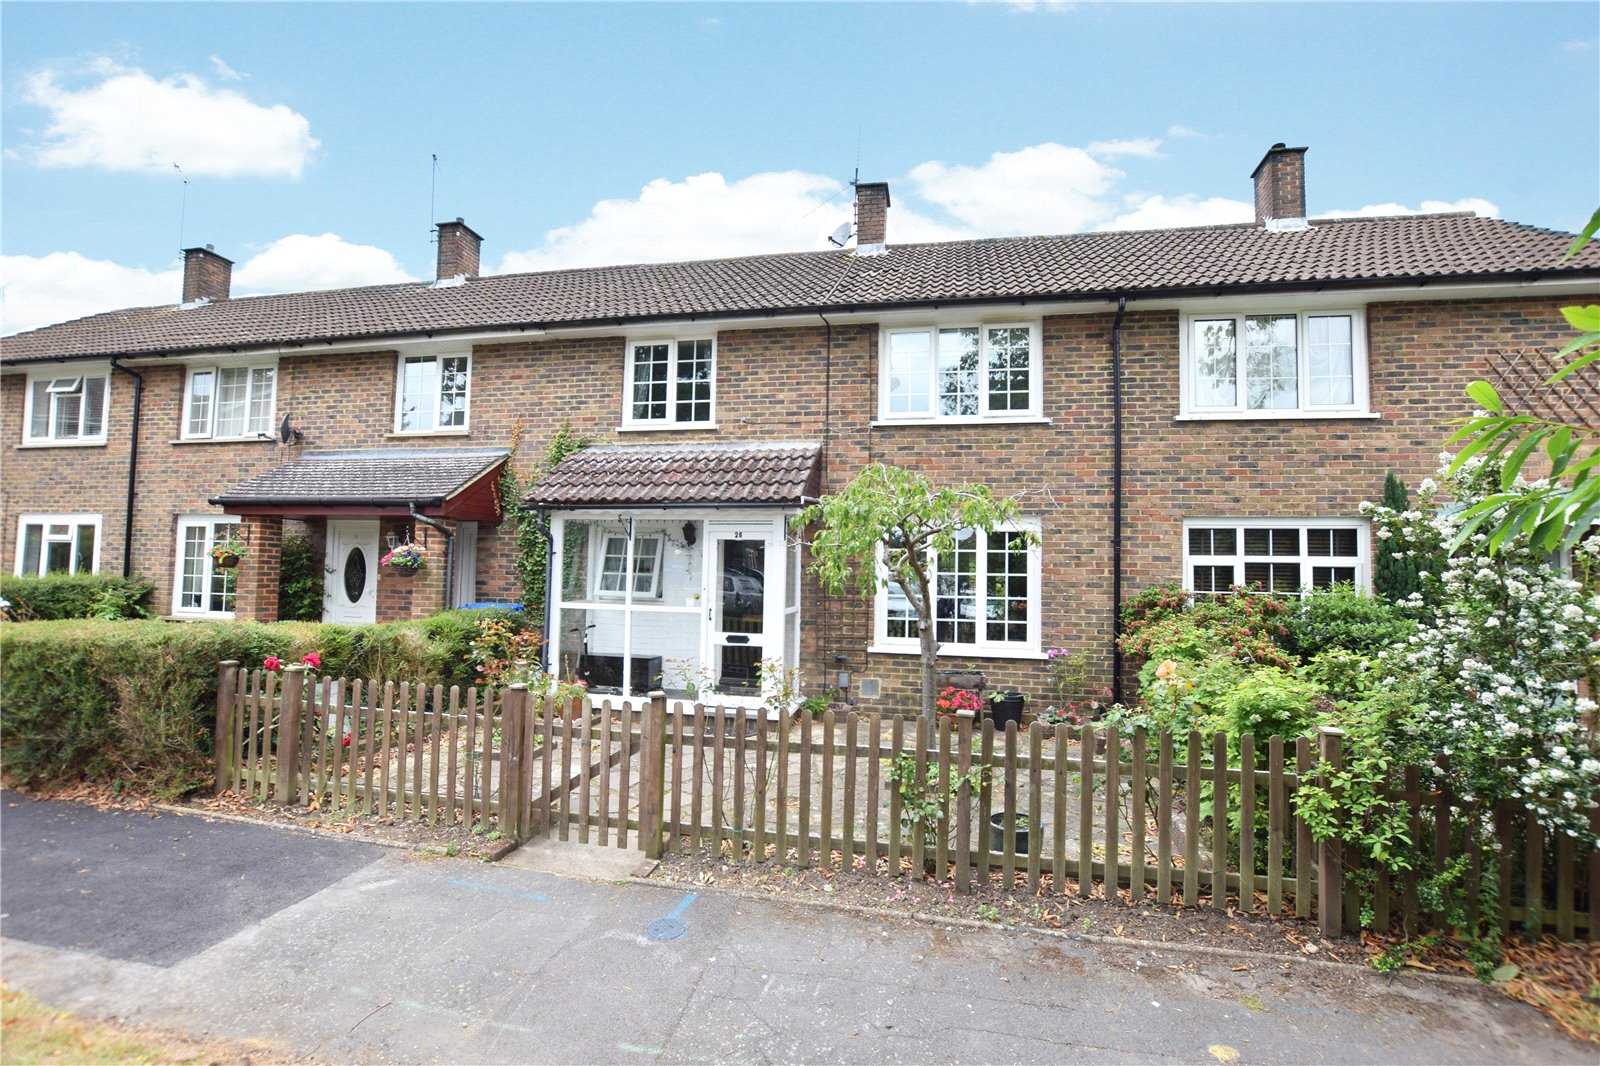 3 Bedrooms Terraced House for sale in Clive Green, Bracknell, Berkshire, RG12